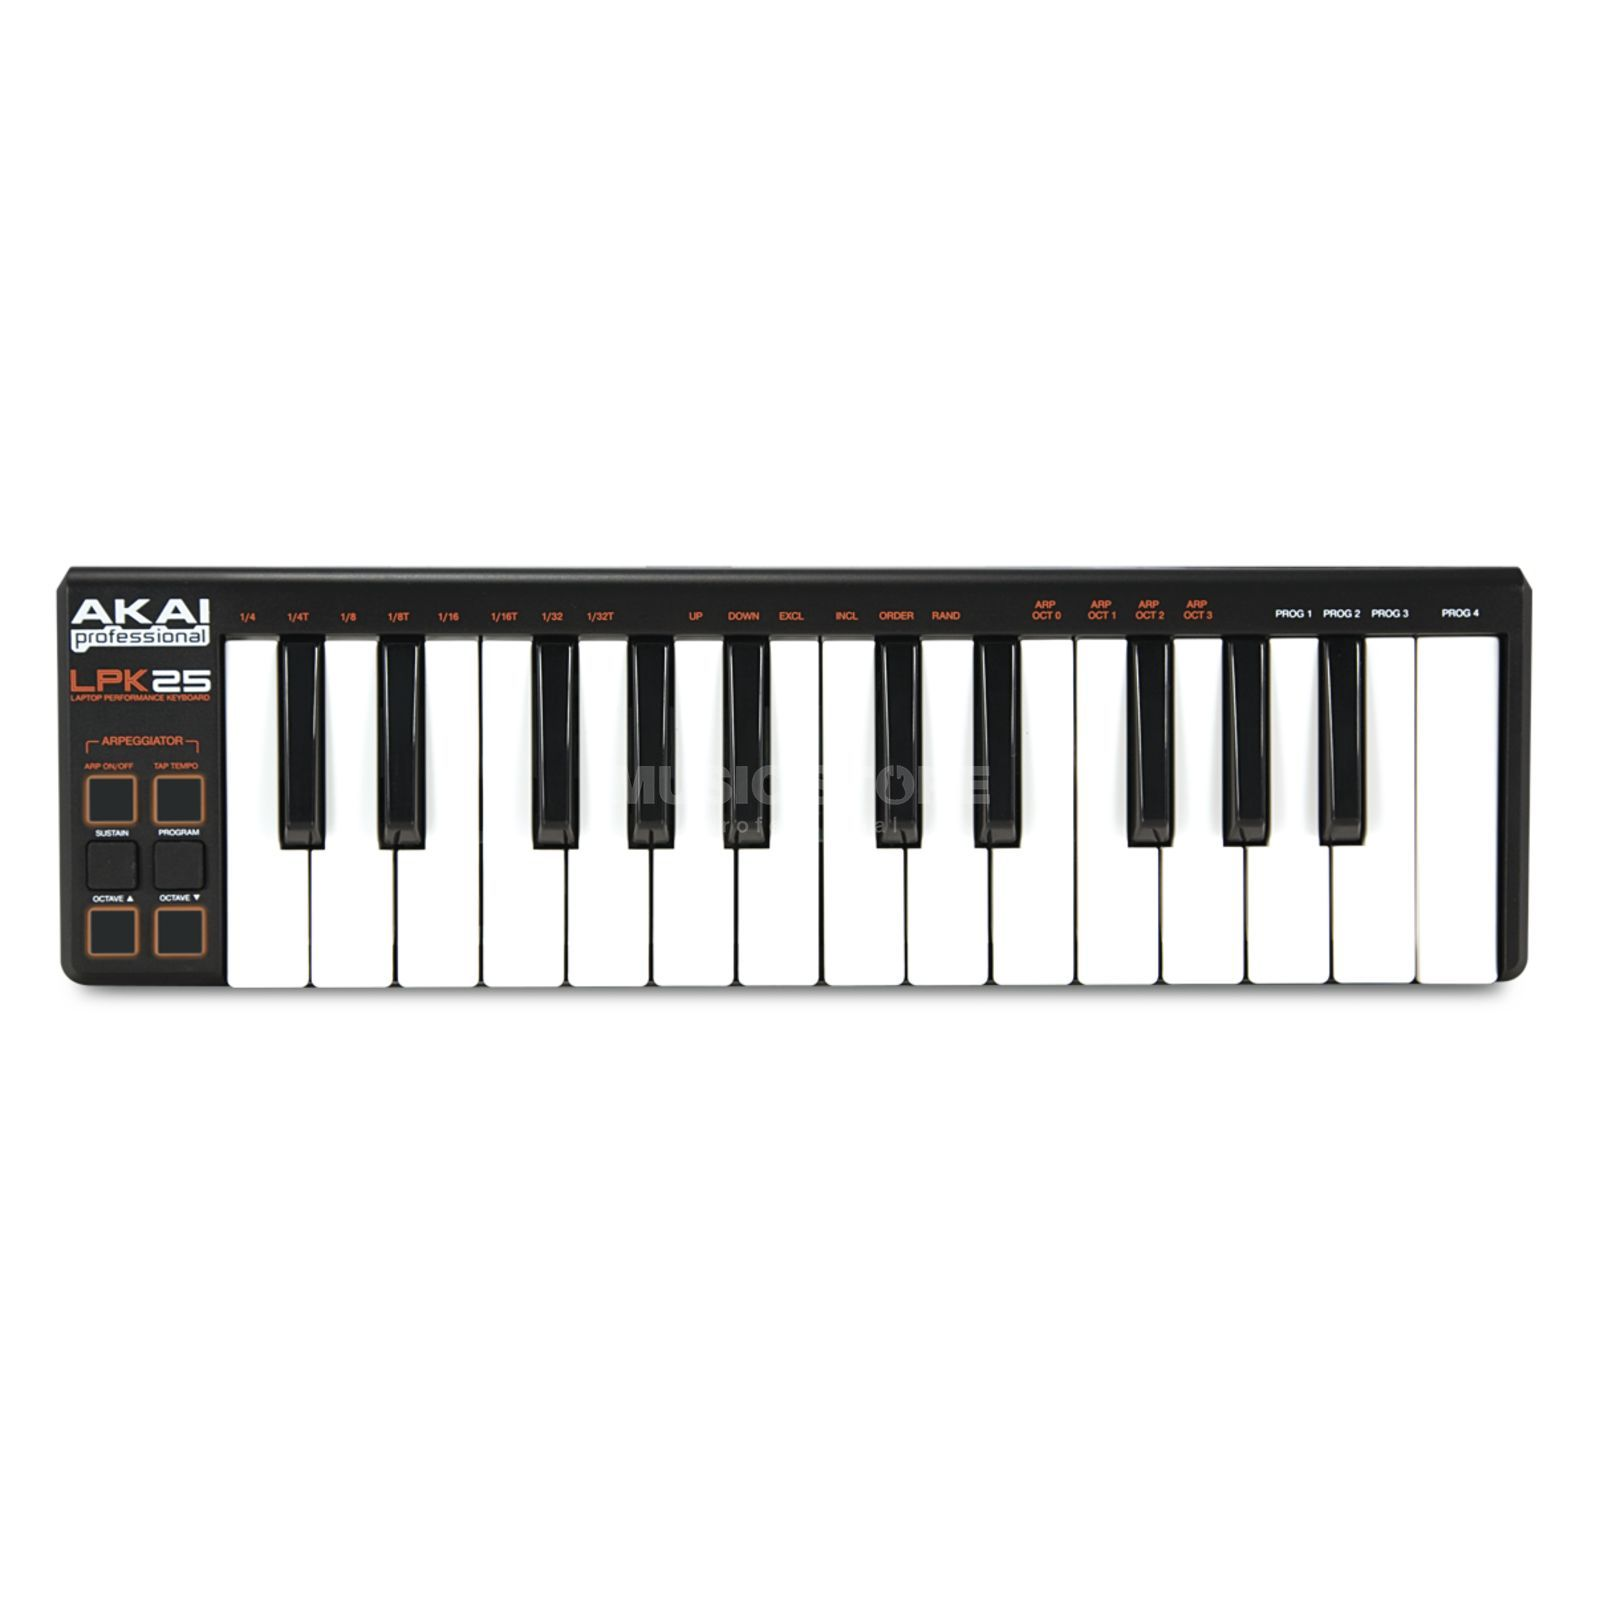 Akai LPK 25 Mini Keyboard Produktbild